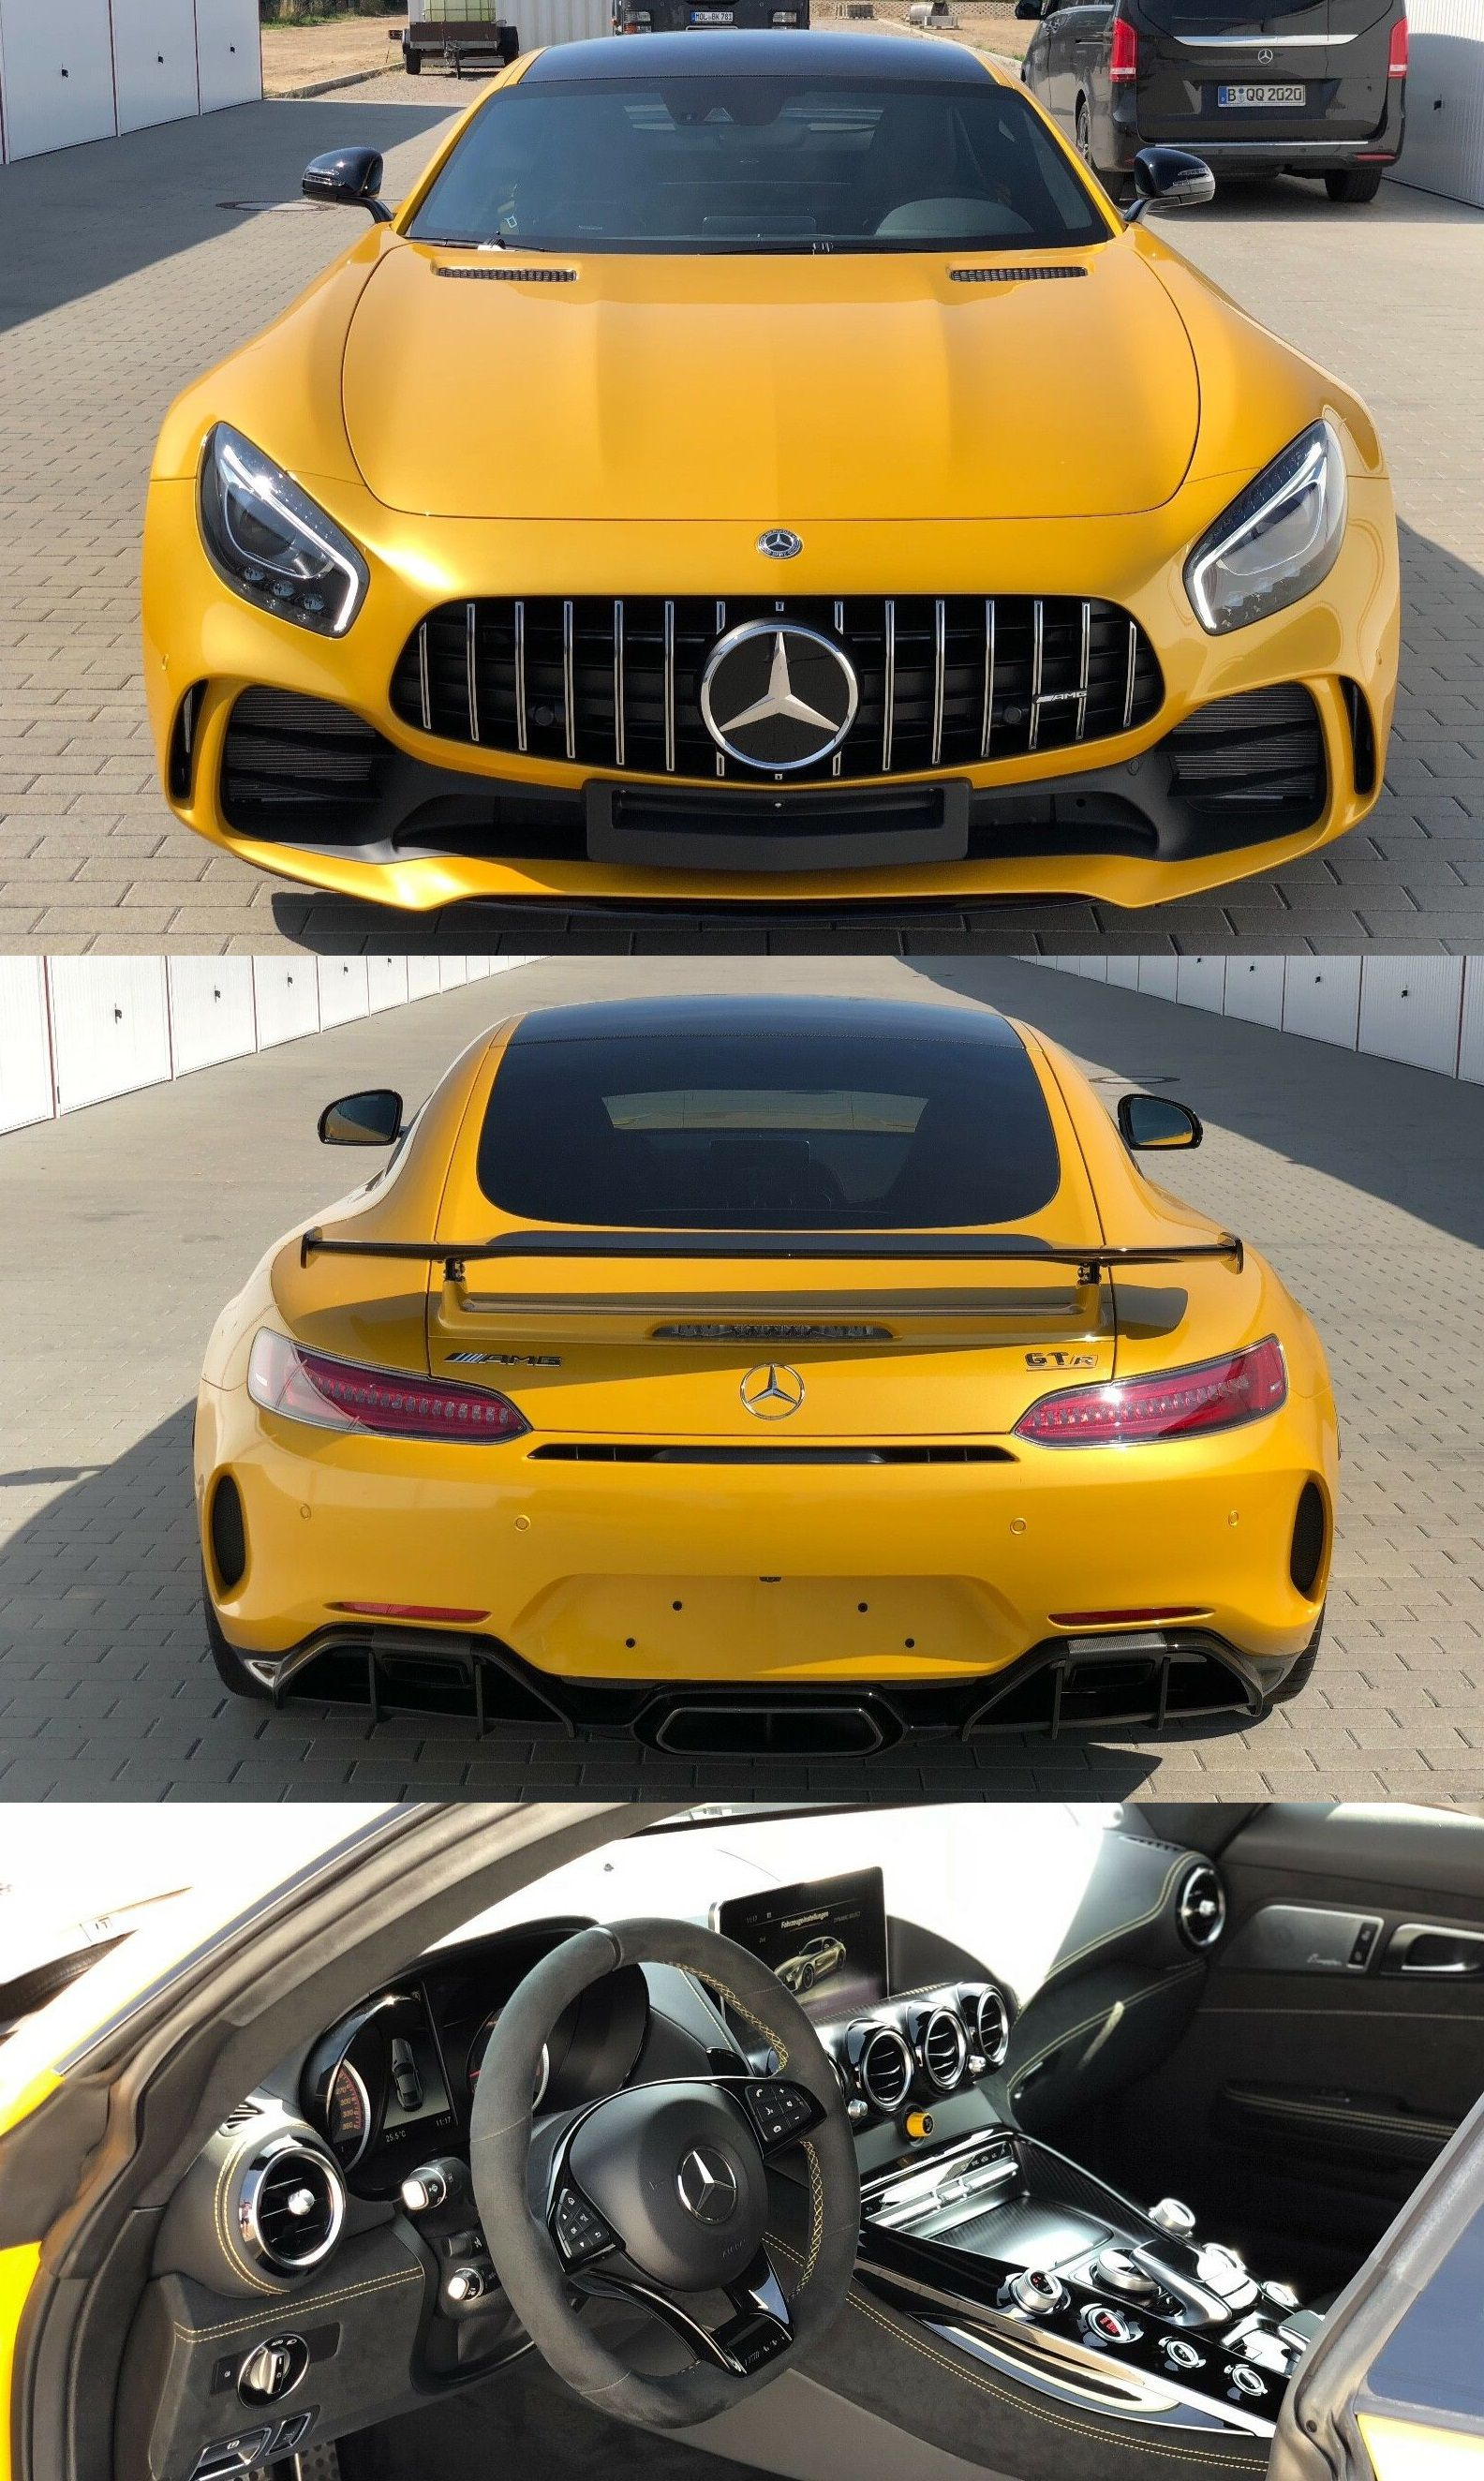 Mercedes Benz Amg Gt R Coupe With Images Mercedes Benz Amg